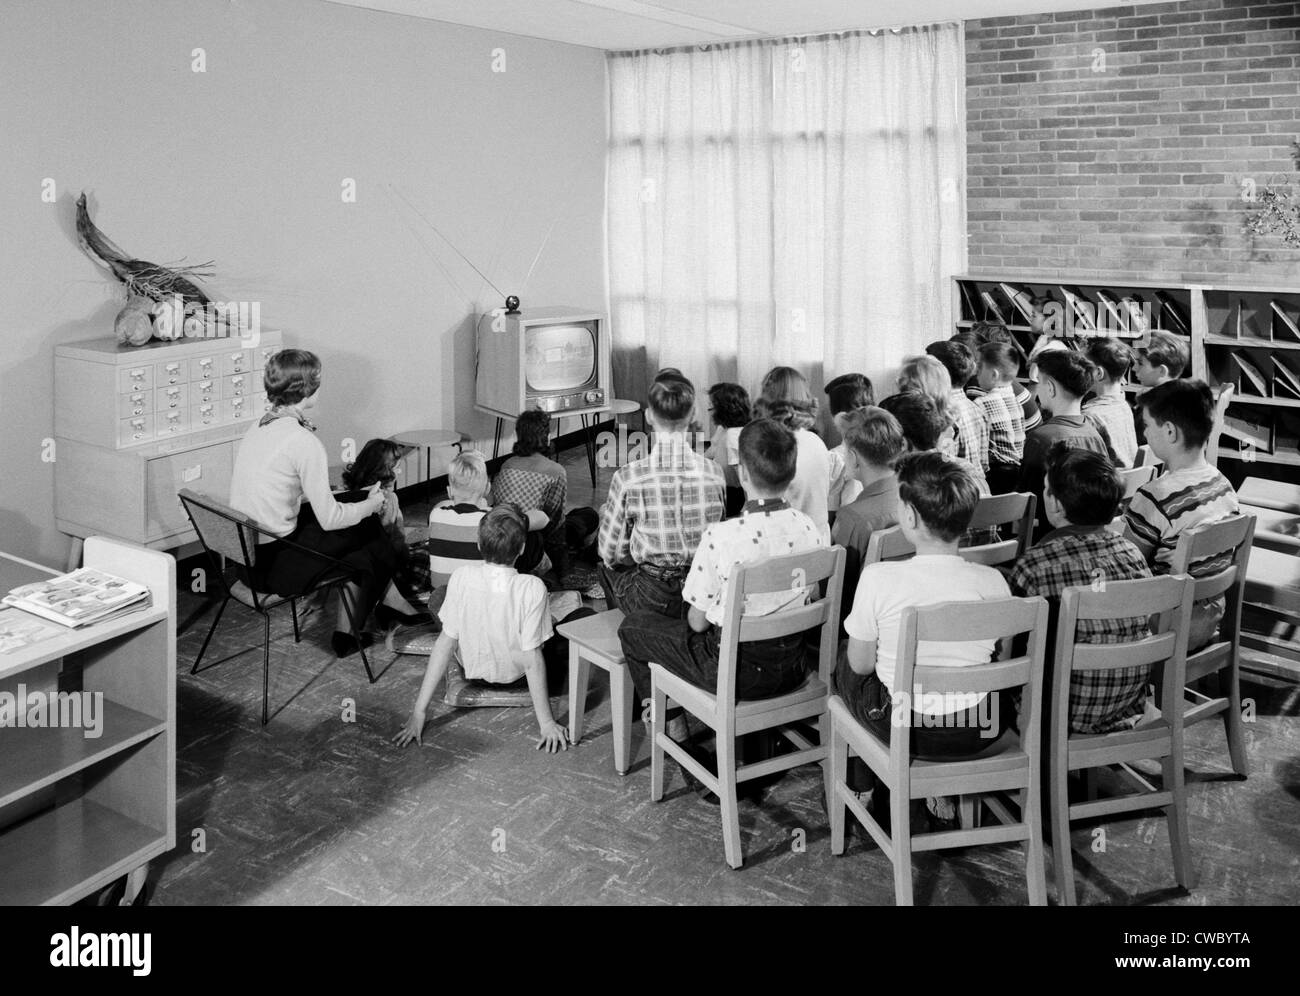 Students and their teacher watch educational television in a school library in Schenectady, New York, 1954. - Stock Image